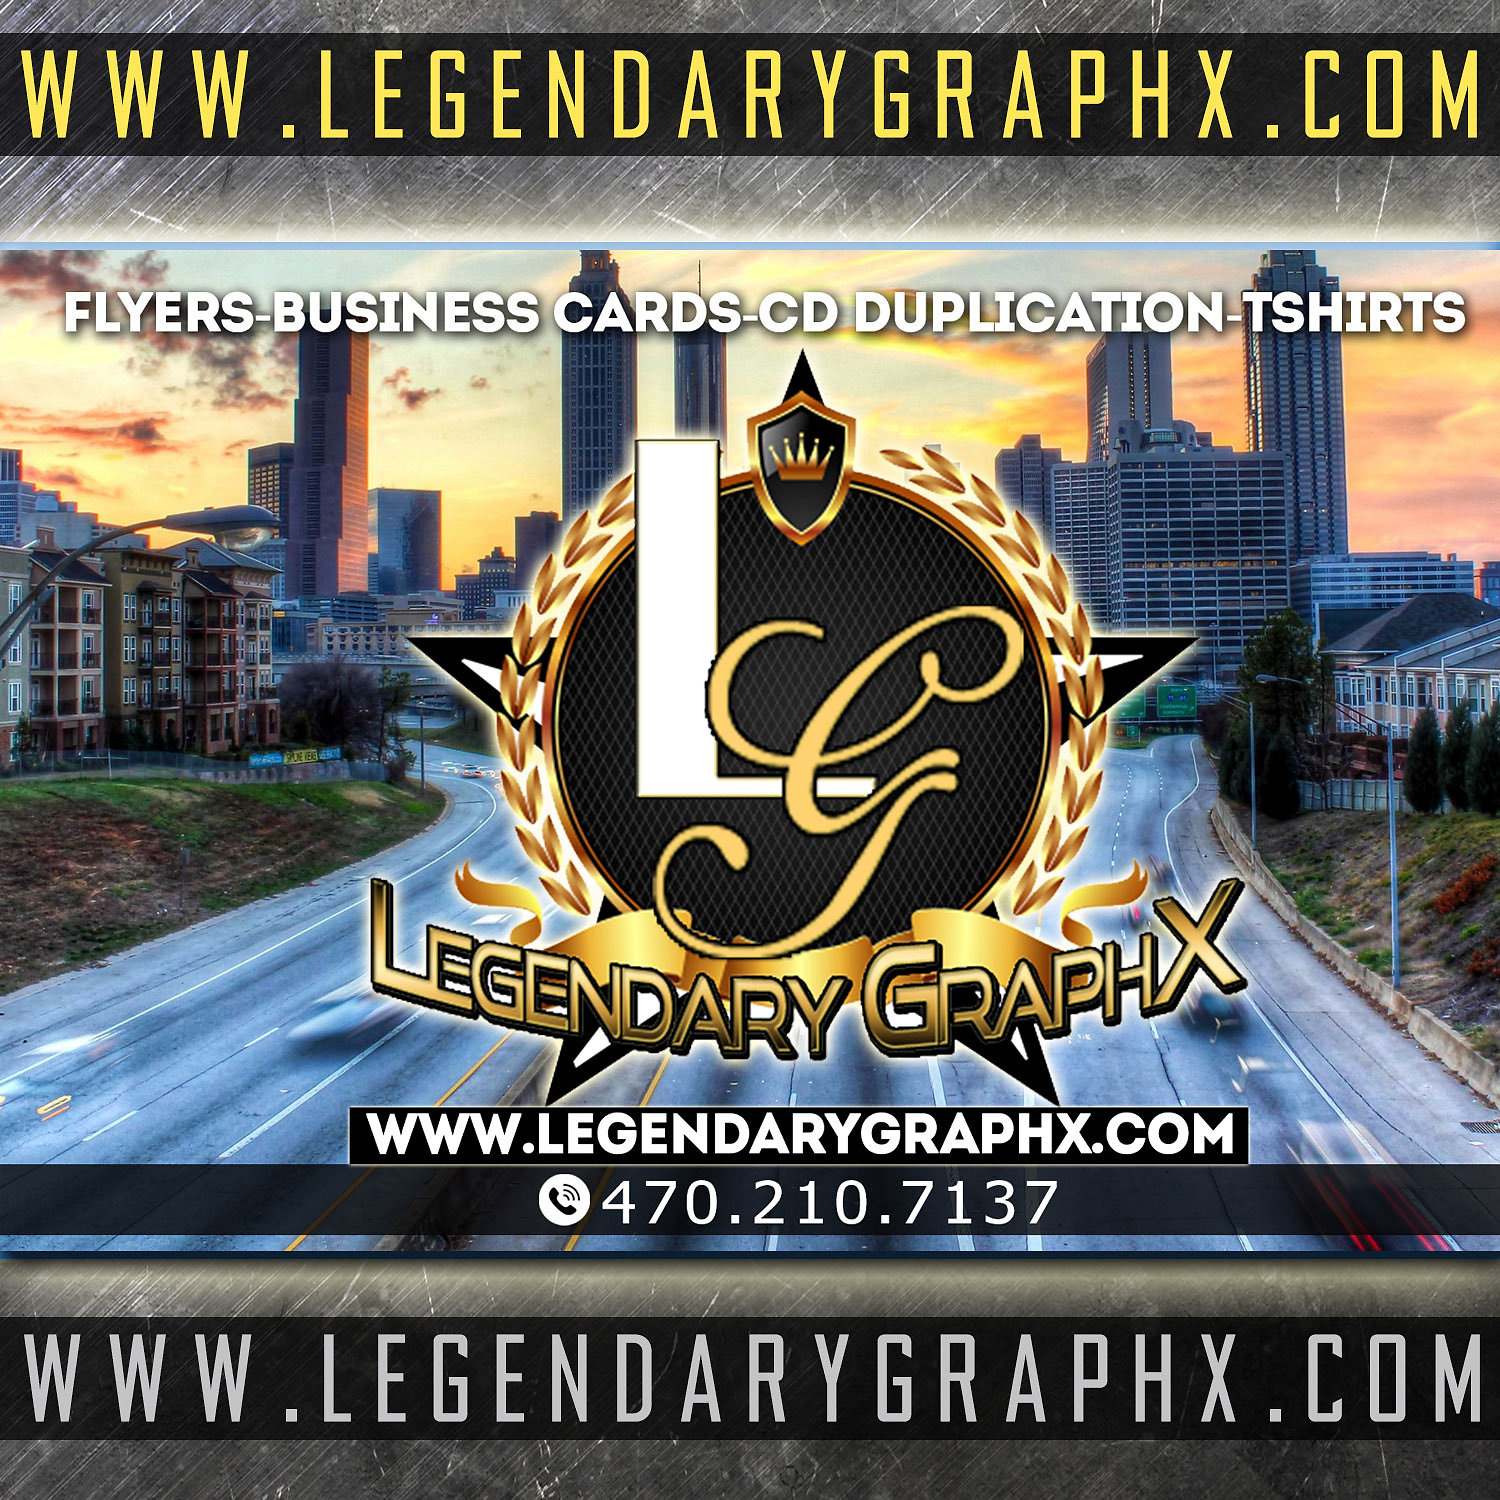 legendary graphx and print llc